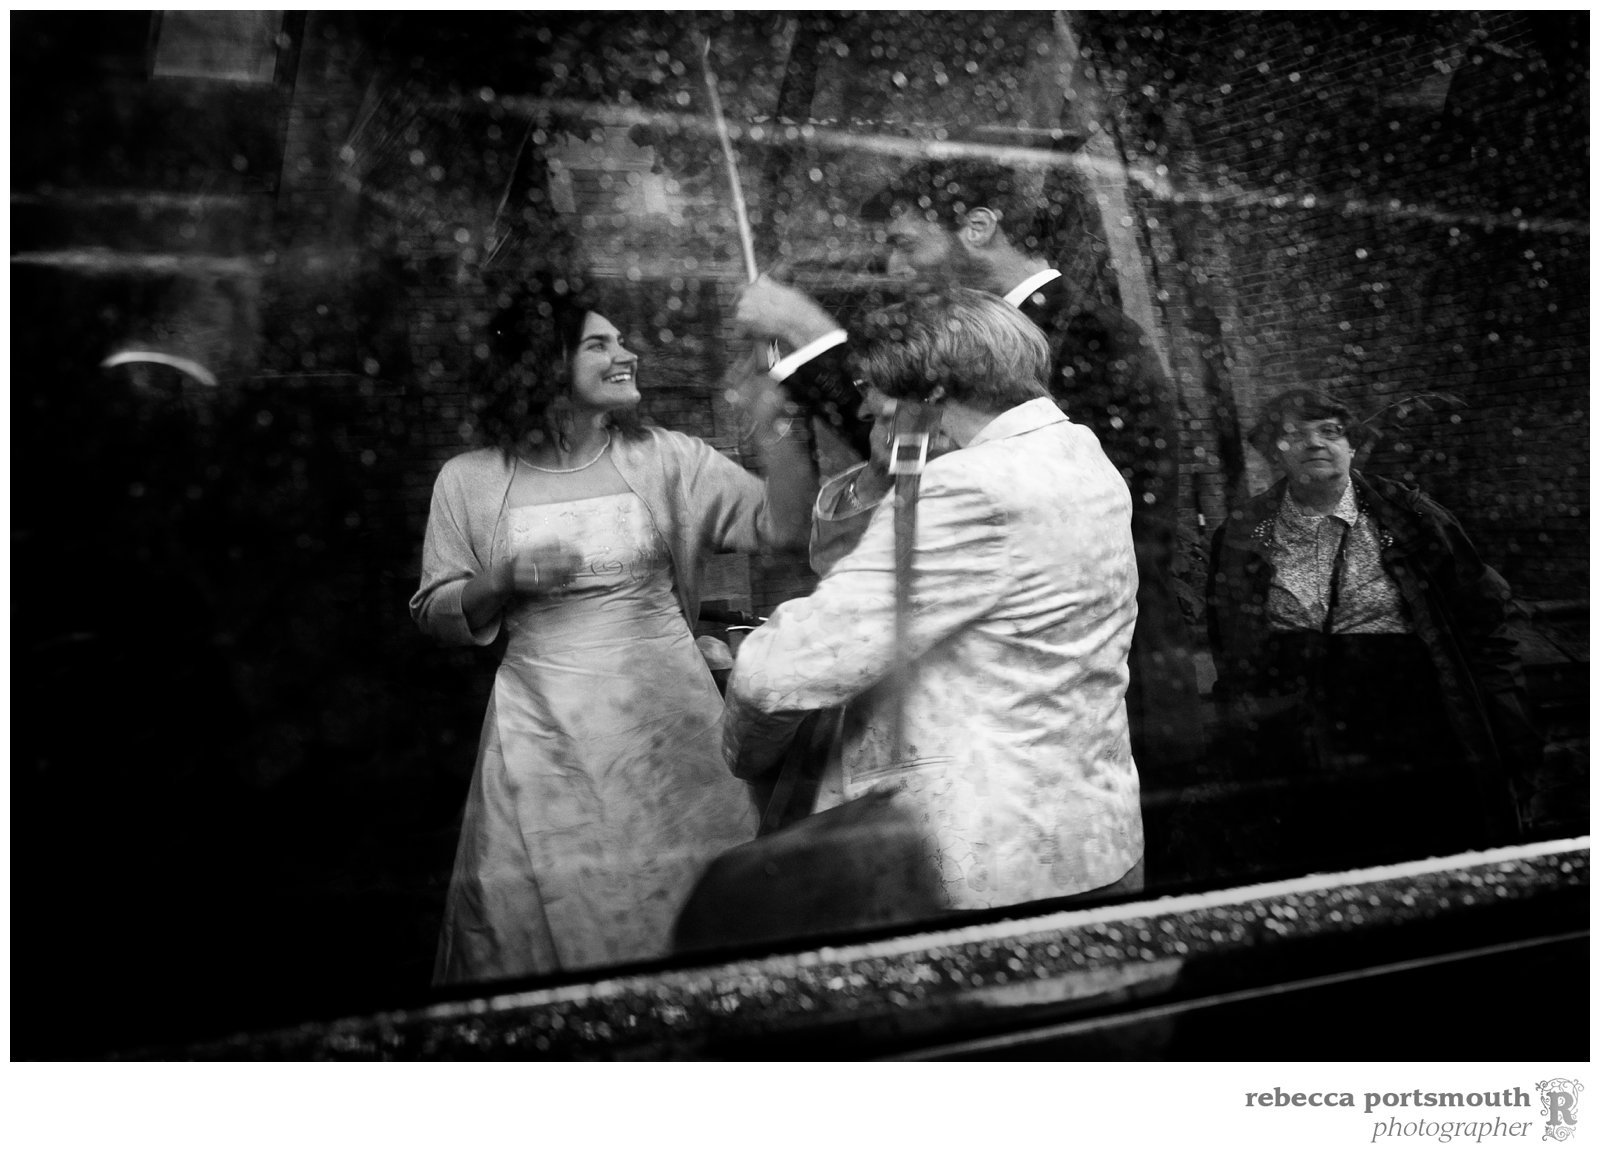 The bride and groom are reflected in a rainy van window.